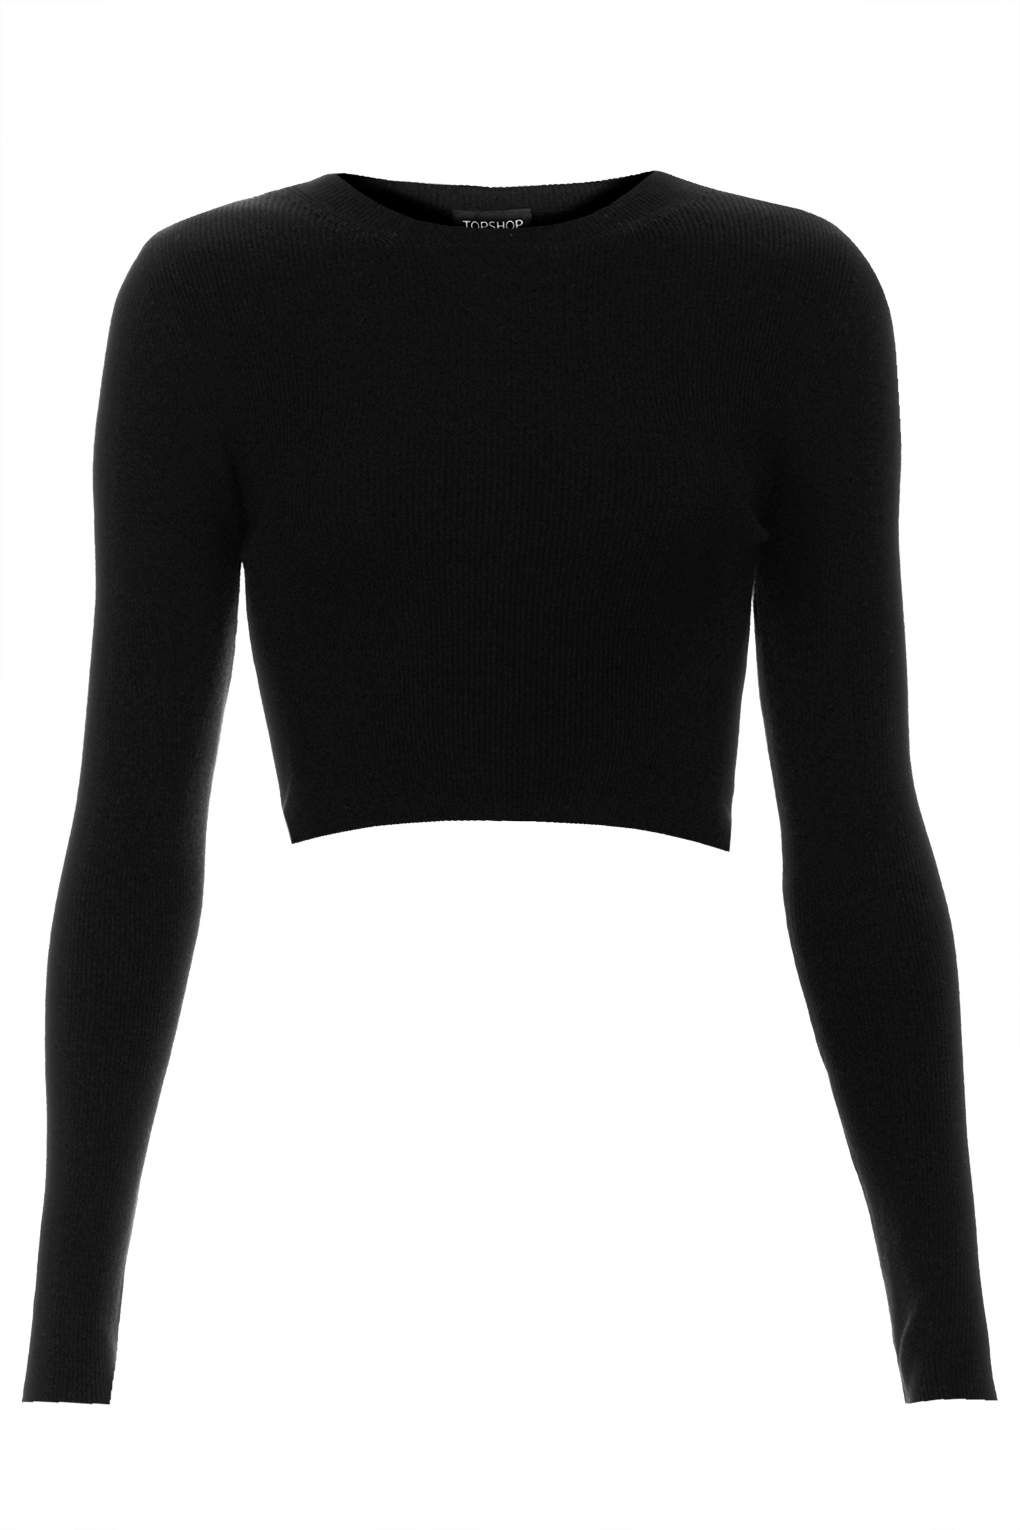 2bf118b8bc9c89 Rib Crop Top £26 Topshop - Long sleeve crops, to make me feel like a 90's  spice girl this season #TOPSHOP #AW14 #WISHLIST